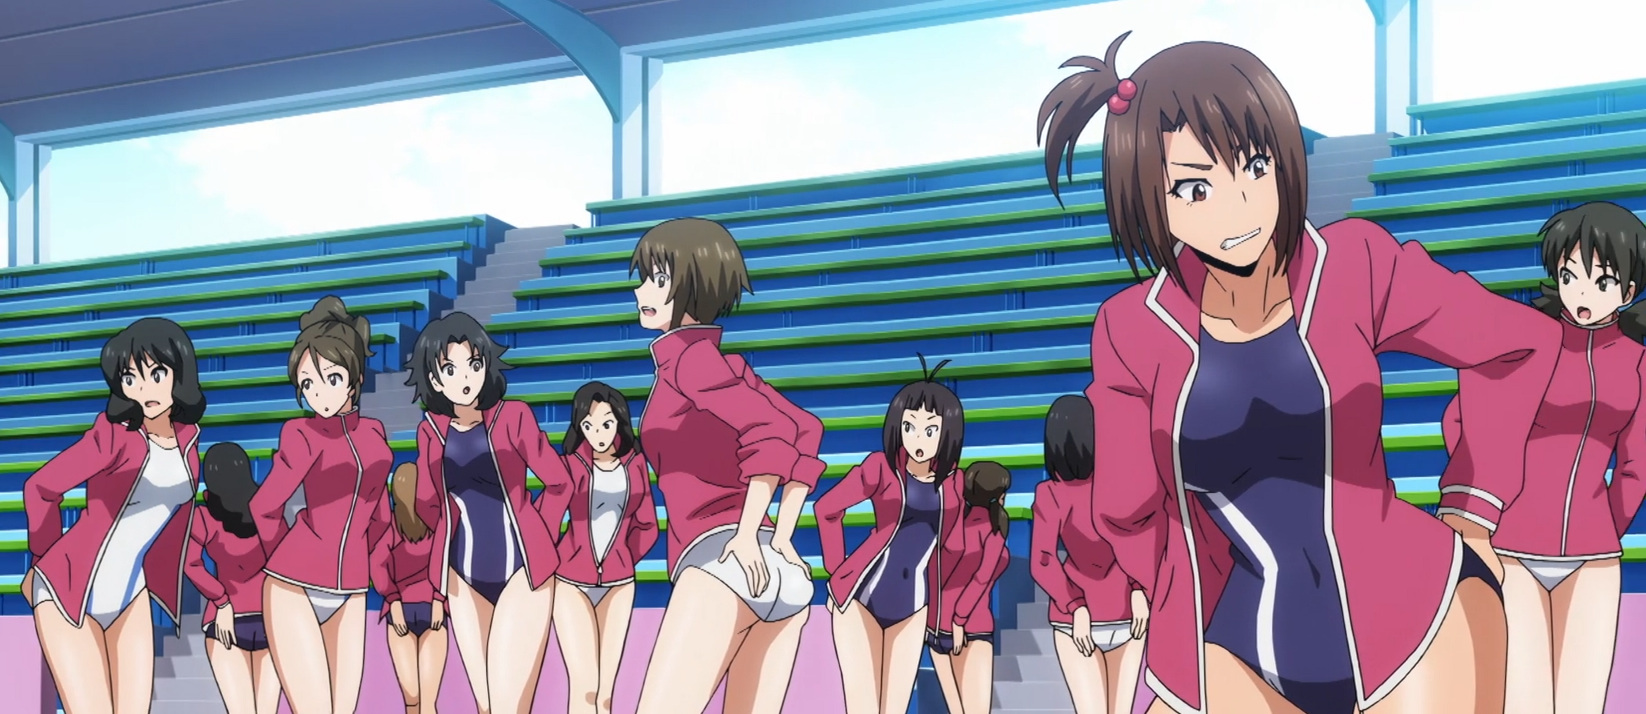 horriblesubs-keijo-04-720p-mkv_snapshot_18-41_2016-10-27_13-48-25_stitch